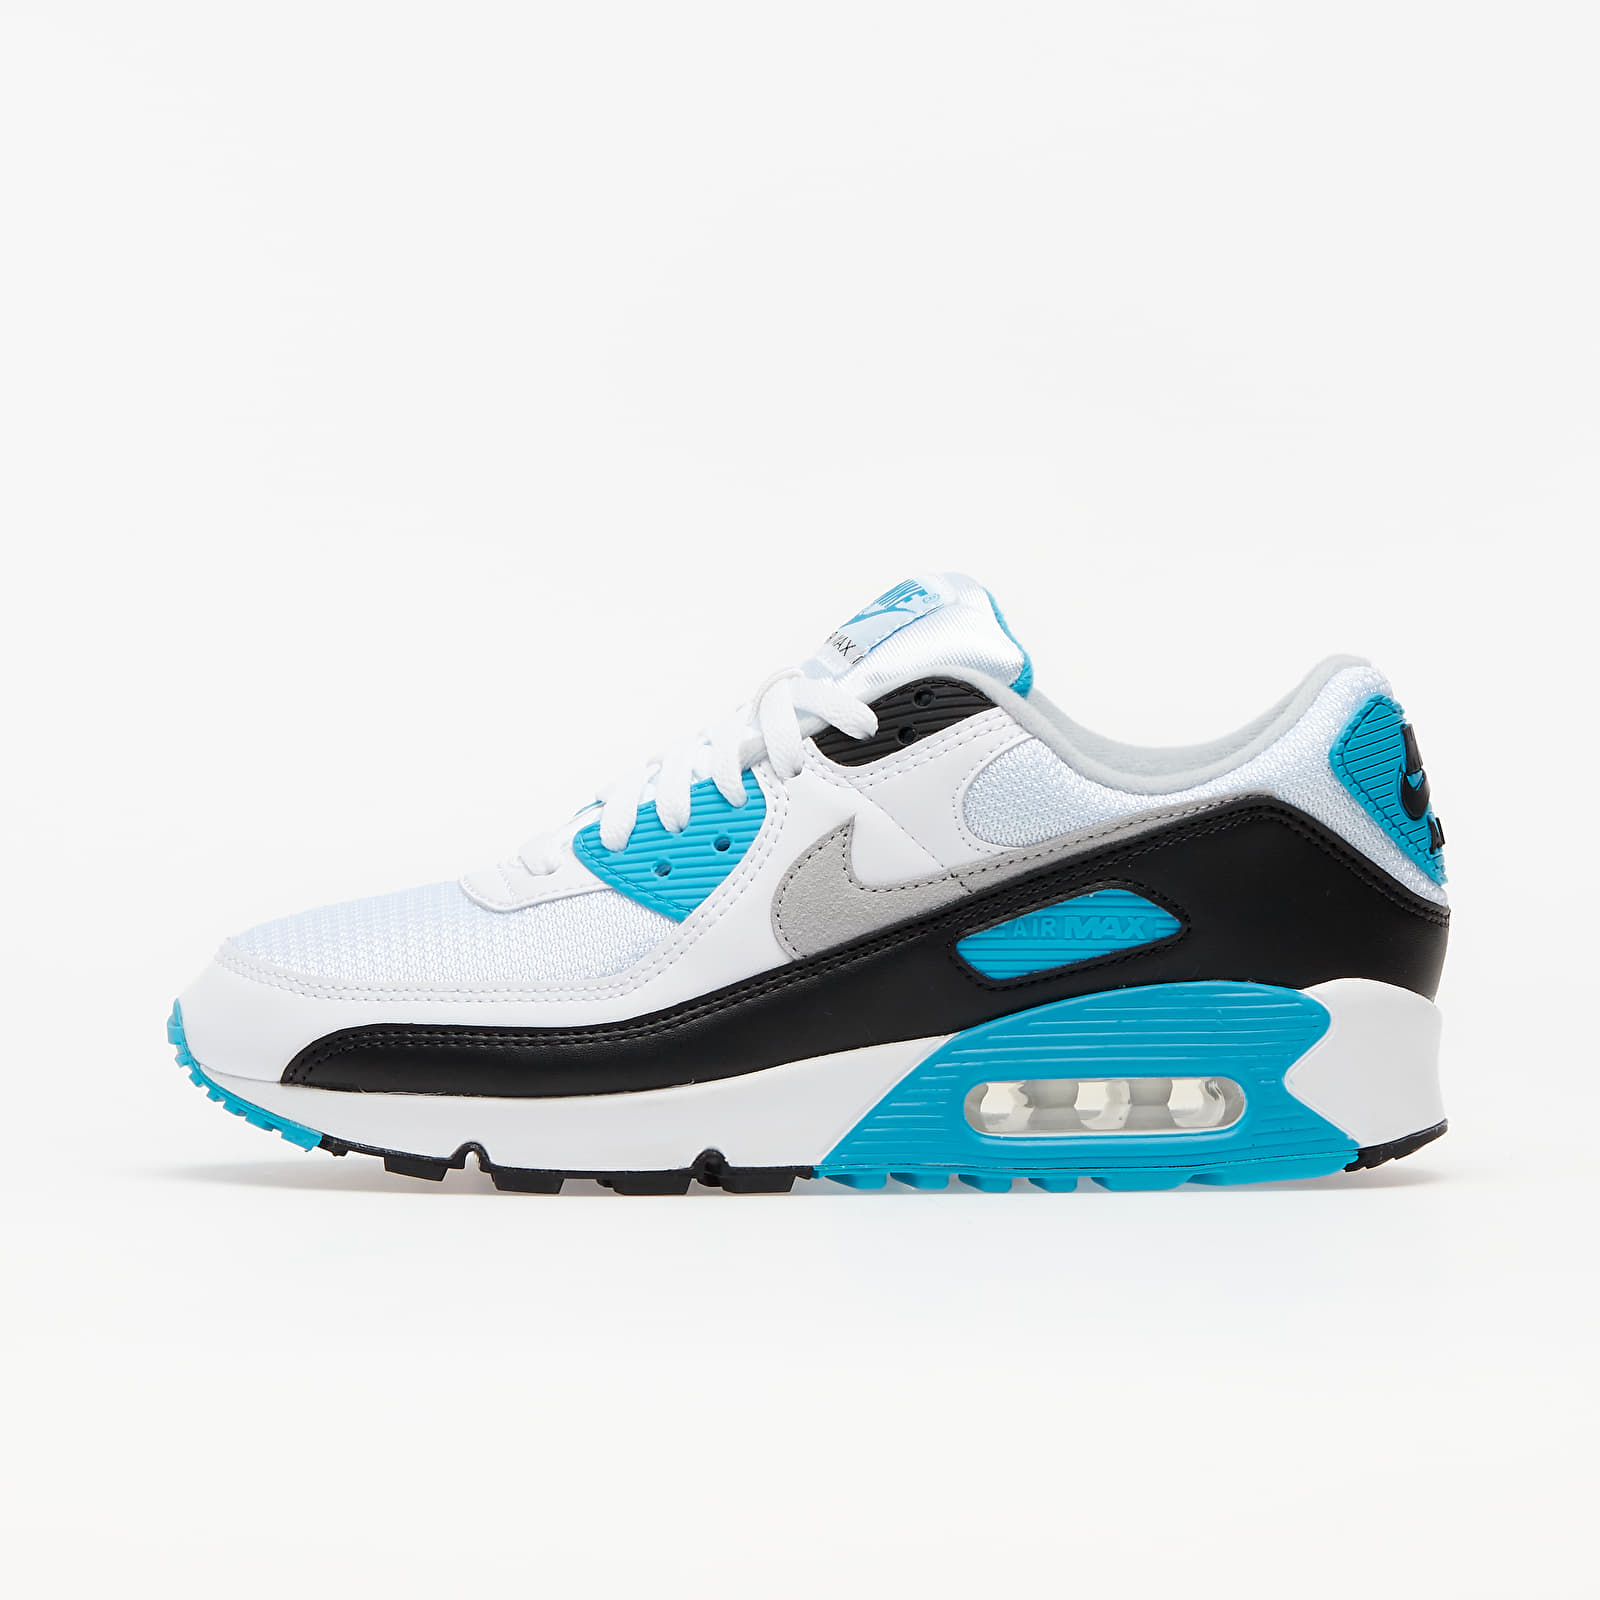 Men's shoes Nike Air Max III White/ Black-Grey Fog-Laser Blue